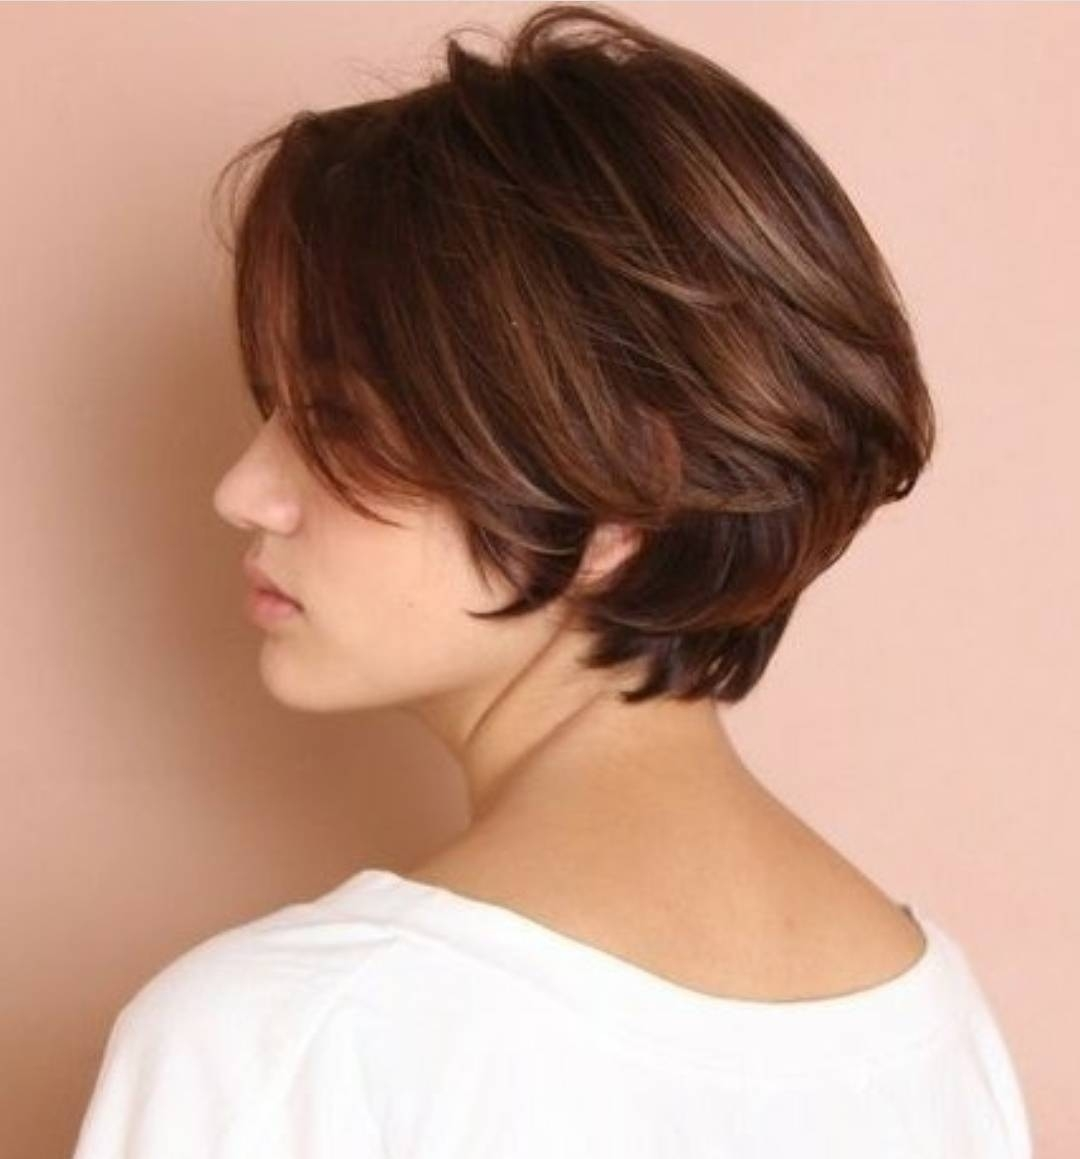 10 Chic Short Bob Haircuts That Balance Your Face Shape! intended for Short Hair With Center Part